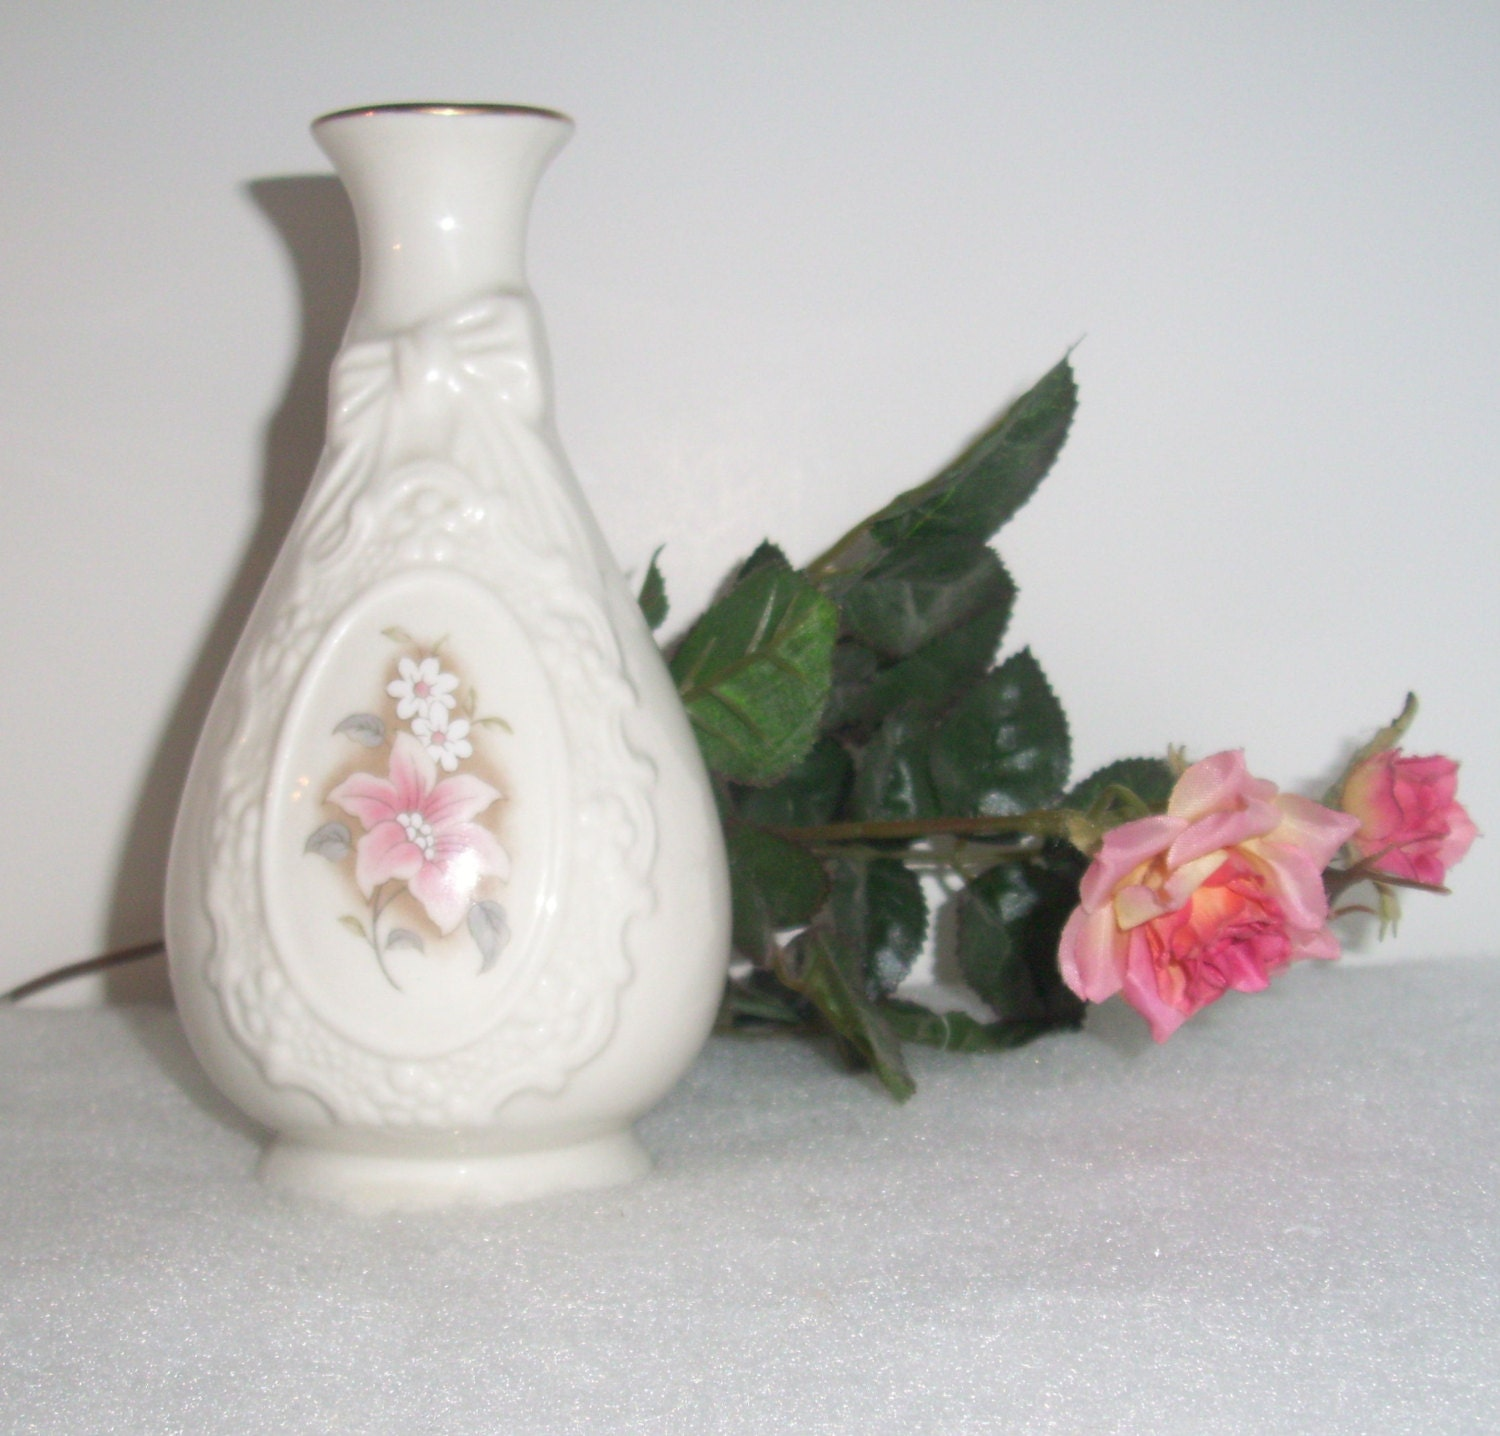 WHITE BUD Vase VINTAGE With Pink Flowers And White Daisies